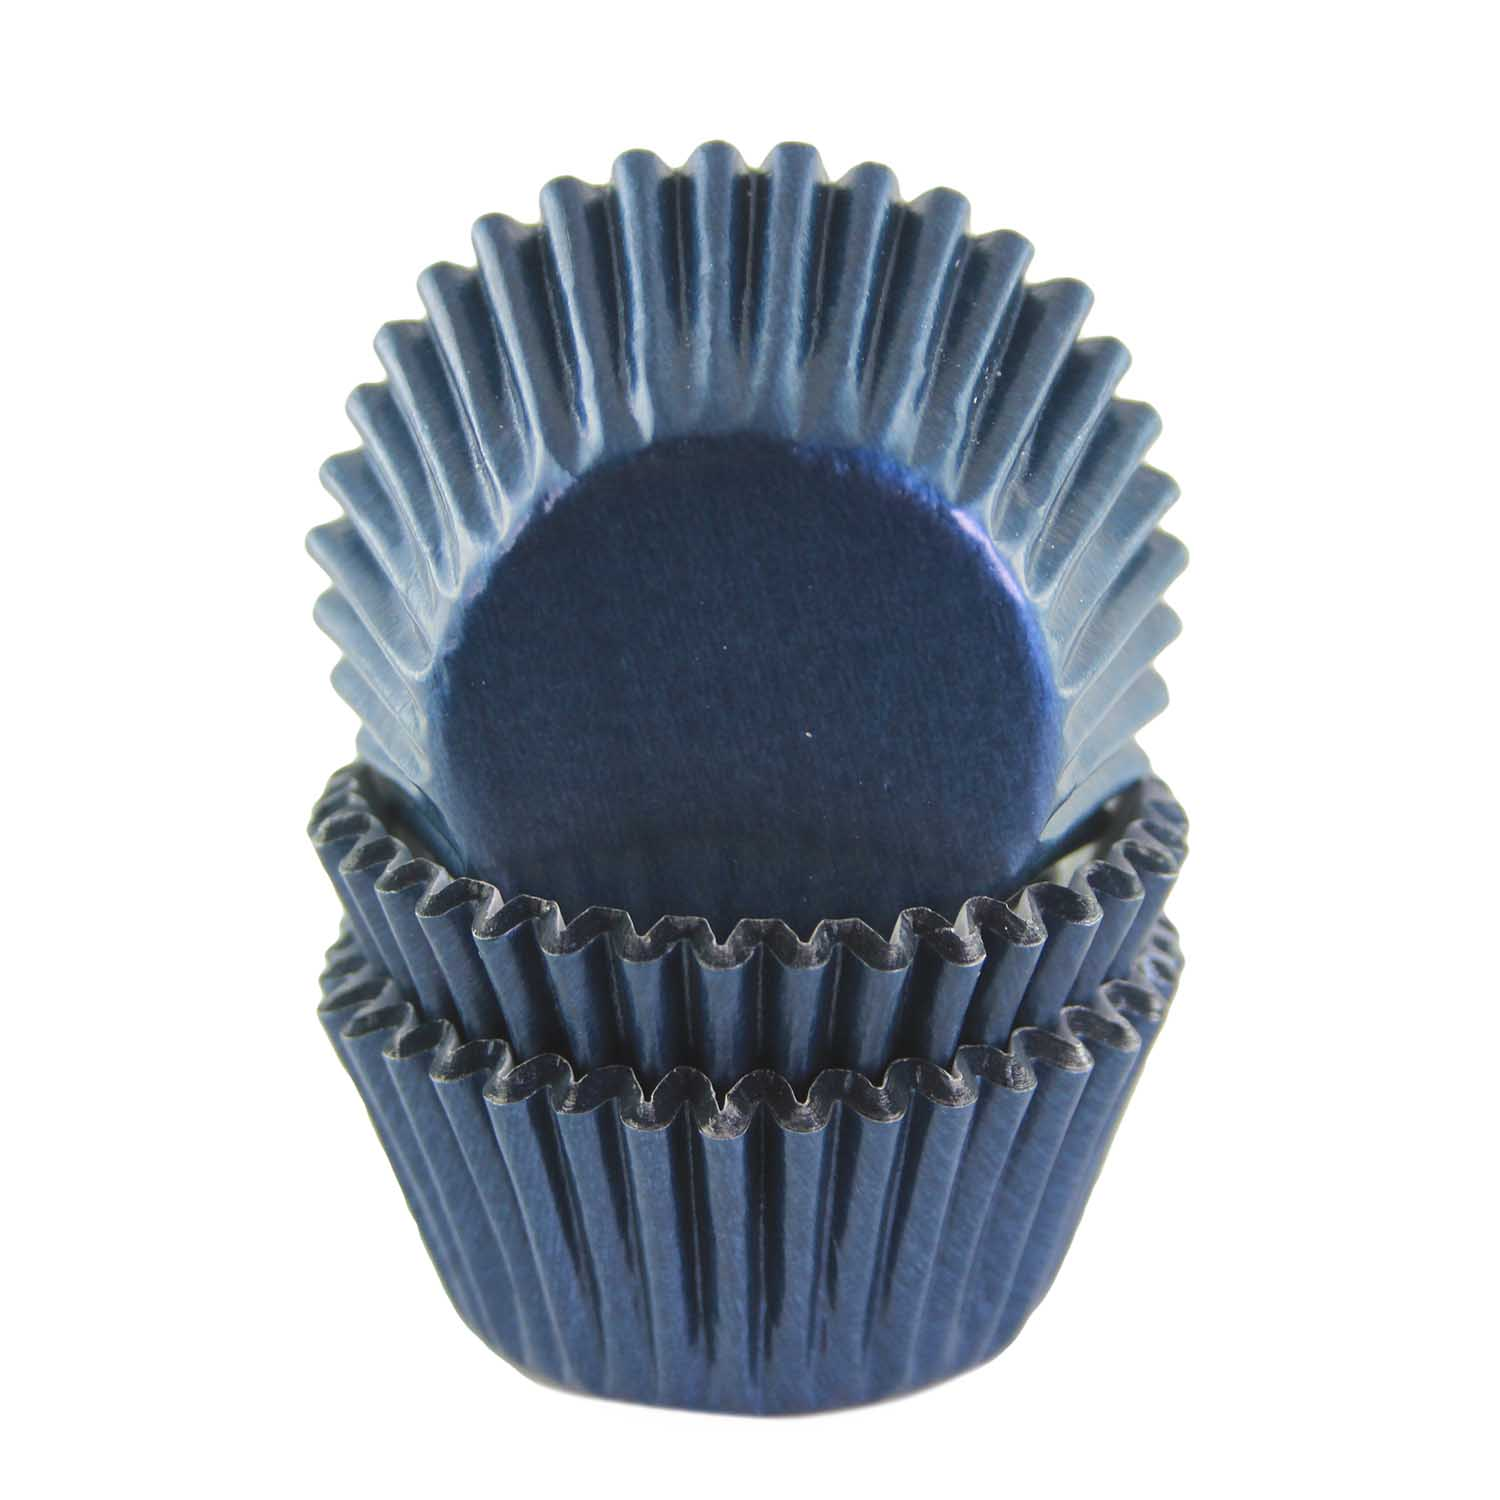 Navy Blue Foil Mini Baking Cups